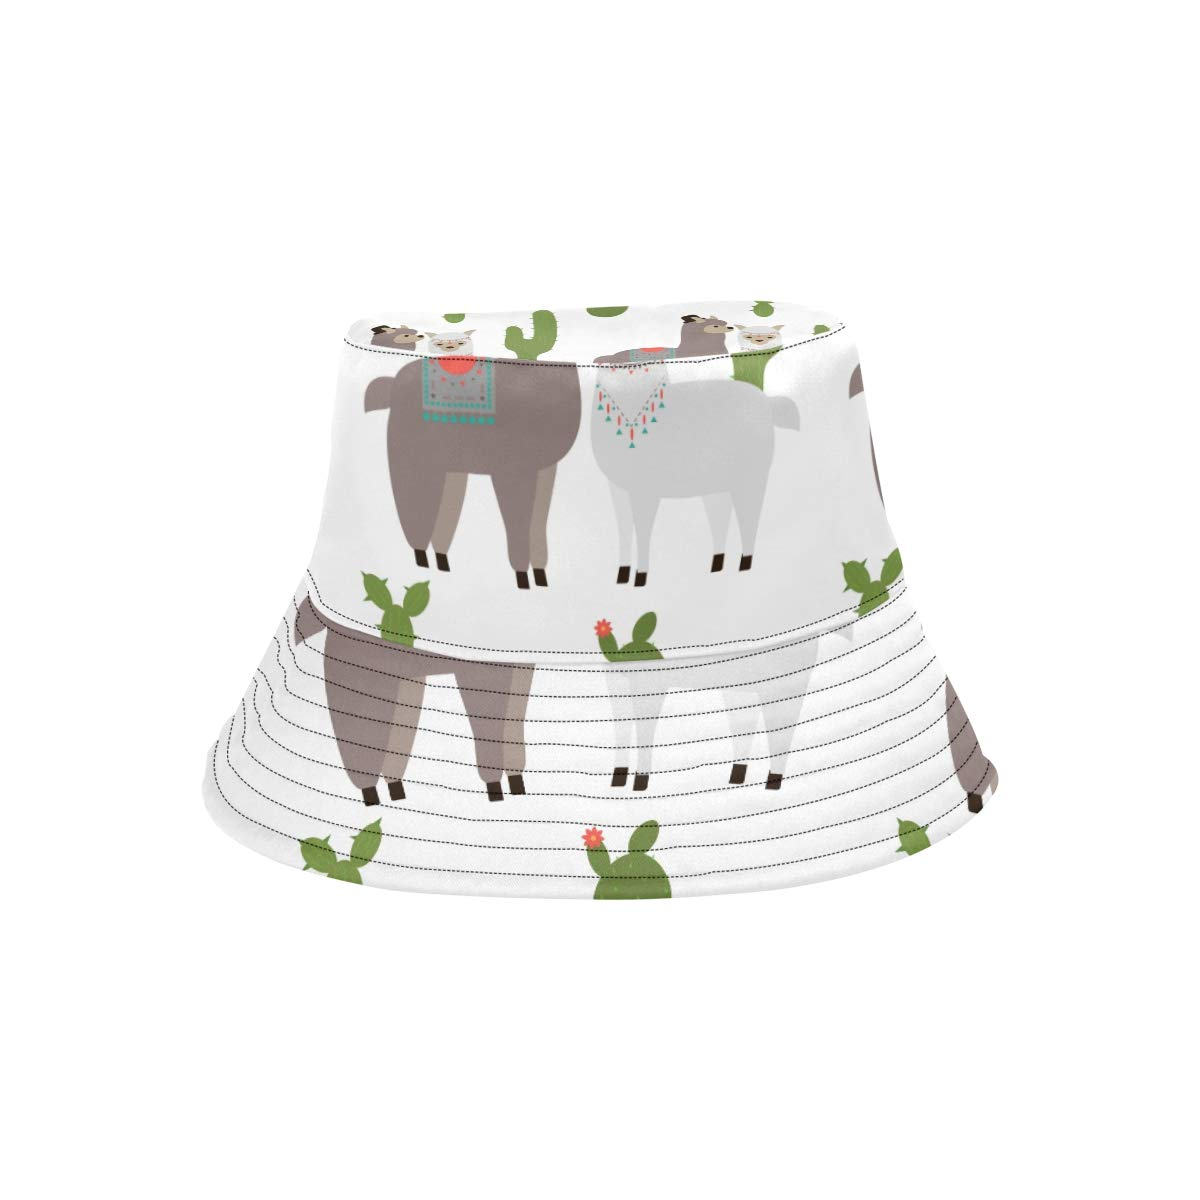 Cute Snow White Alpaca Lama with Cactus New Summer Unisex Cotton Fashion Fishing Sun Bucket Hats for Kid Teens Women and Men with Customize Top Packable Fisherman Cap for Outdoor Travel